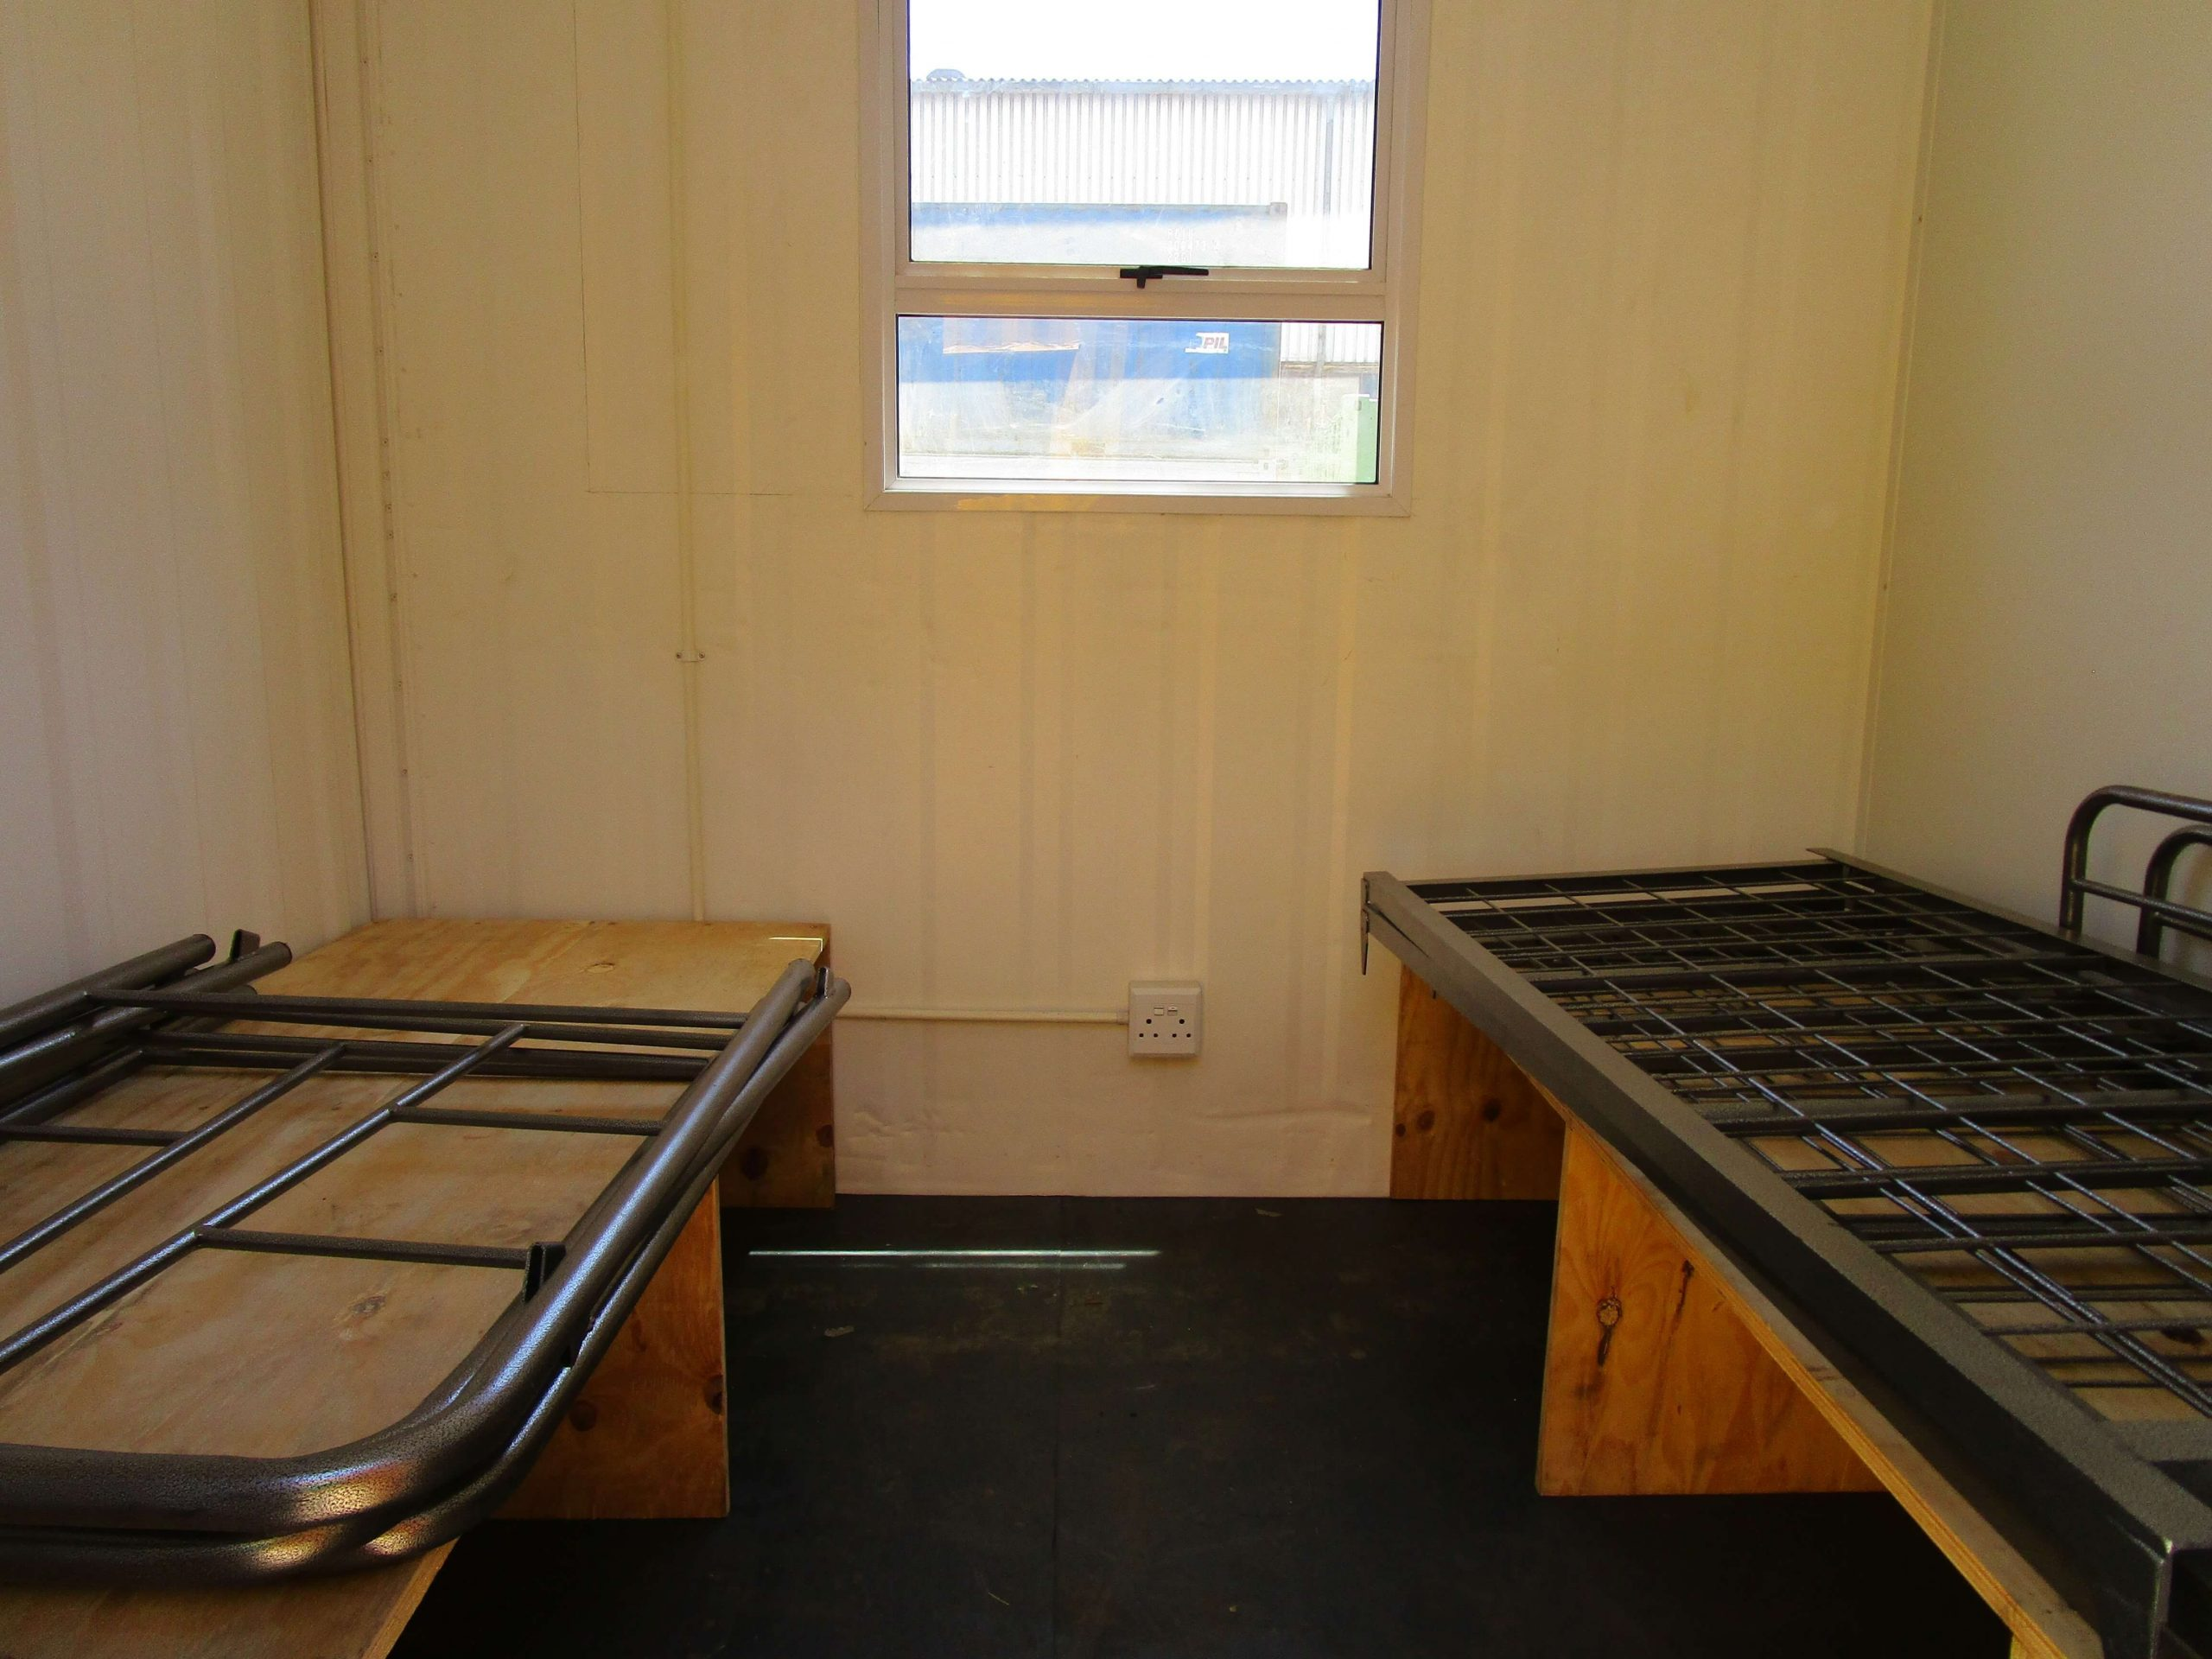 Shipping Container Ideas Internal View   Container Rental & Sales 26